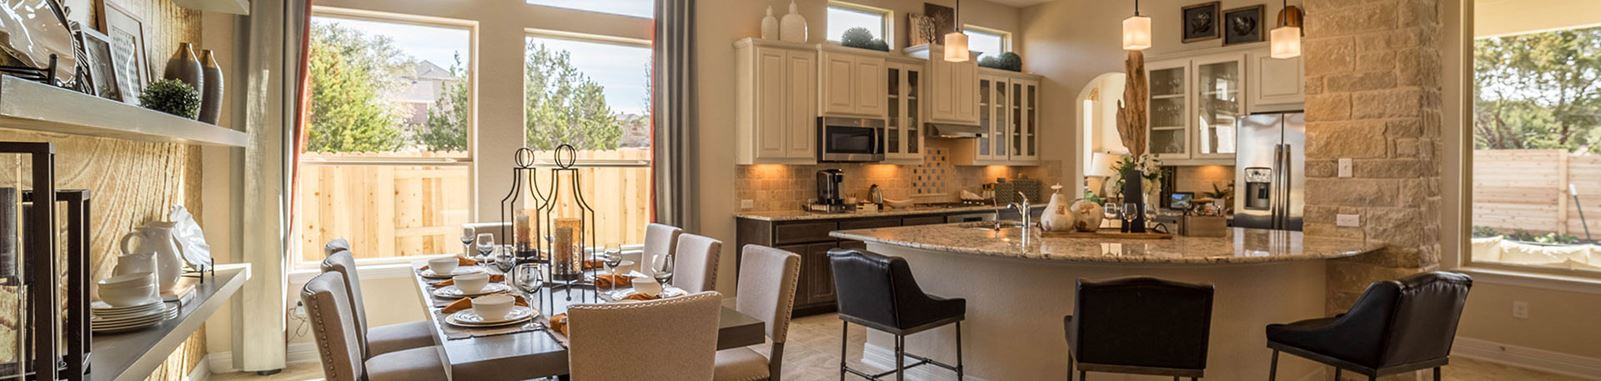 1609 Llano Stage Trail - Ryder model home by Chesmar in Sweetwater